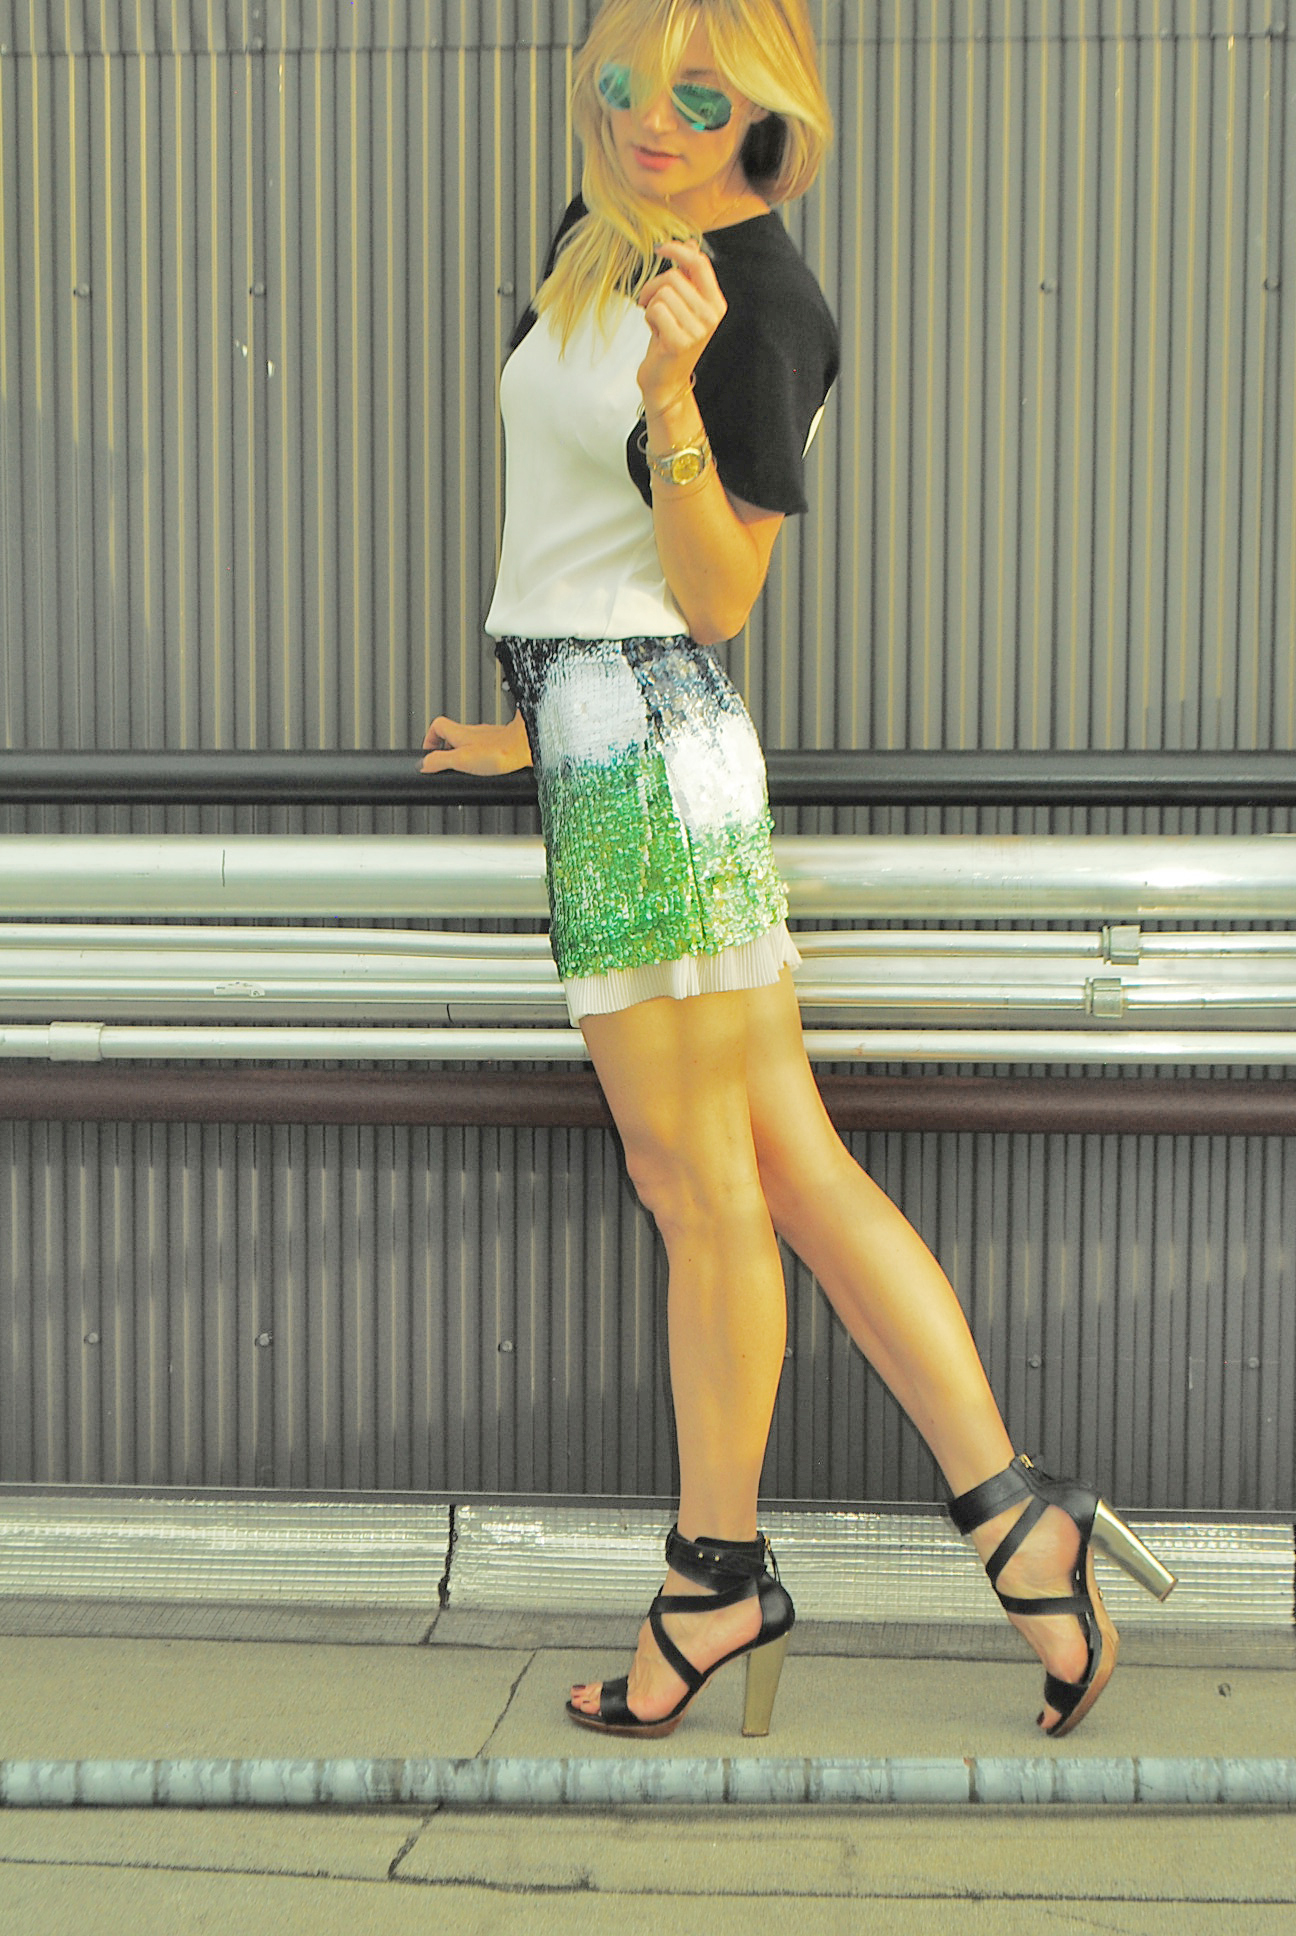 Top,  H&M  (old); Skirt,  Zara  (old); Shoes,  Pour la Victoire  (old); Glasses,  Ray-Ban